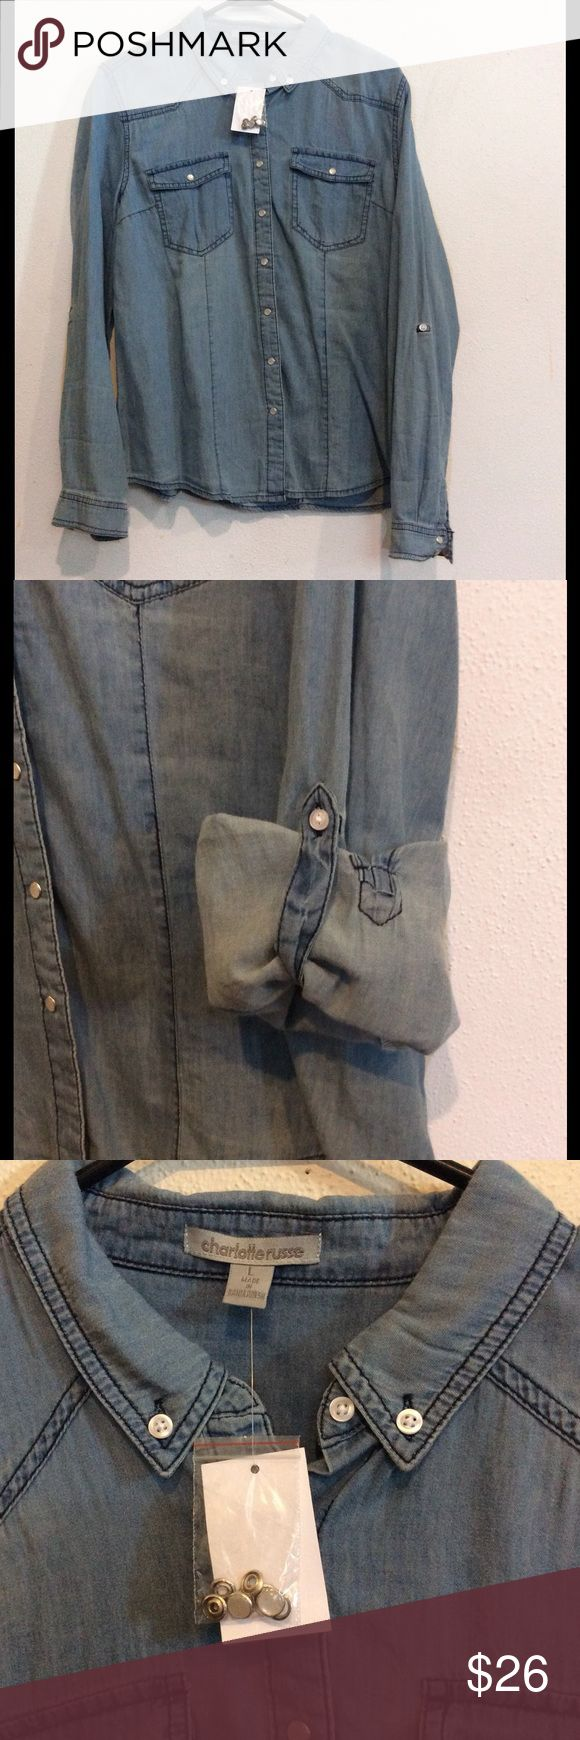 Charlotte Russe pearl snap chambray top NWT. Great with leggings and boots Charlotte Russe Tops Button Down Shirts